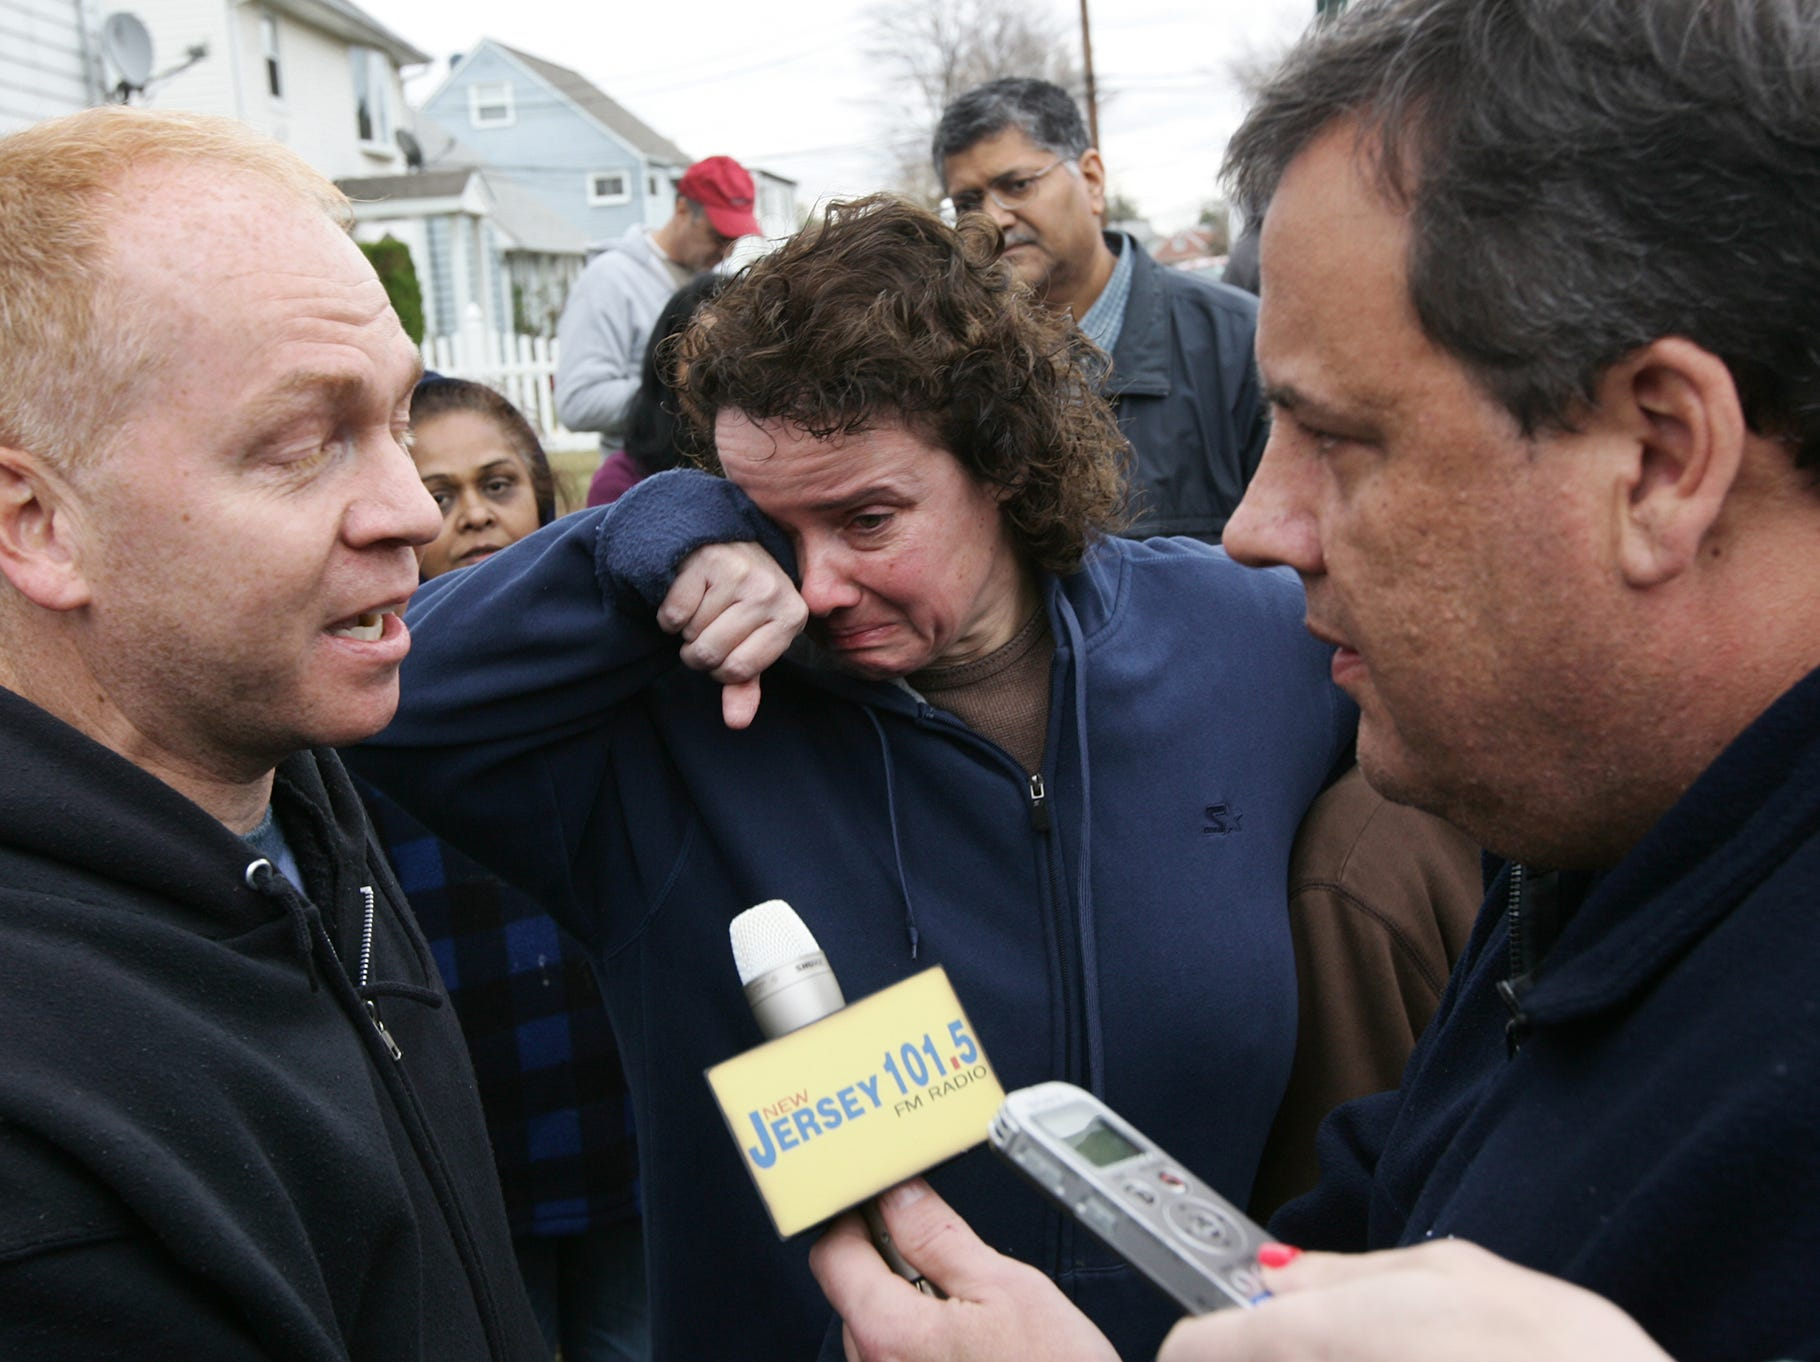 Annmarie Pansini (center) has had an emotional 72 hours after Hurricane Sandy swept through her Moonachie neighborhood.  Gov. Christie told her husband, Michael Pansini (left)and other residents that FEMA would get back to them within 24-48 hours of them calling to register. Thursday, November 1,